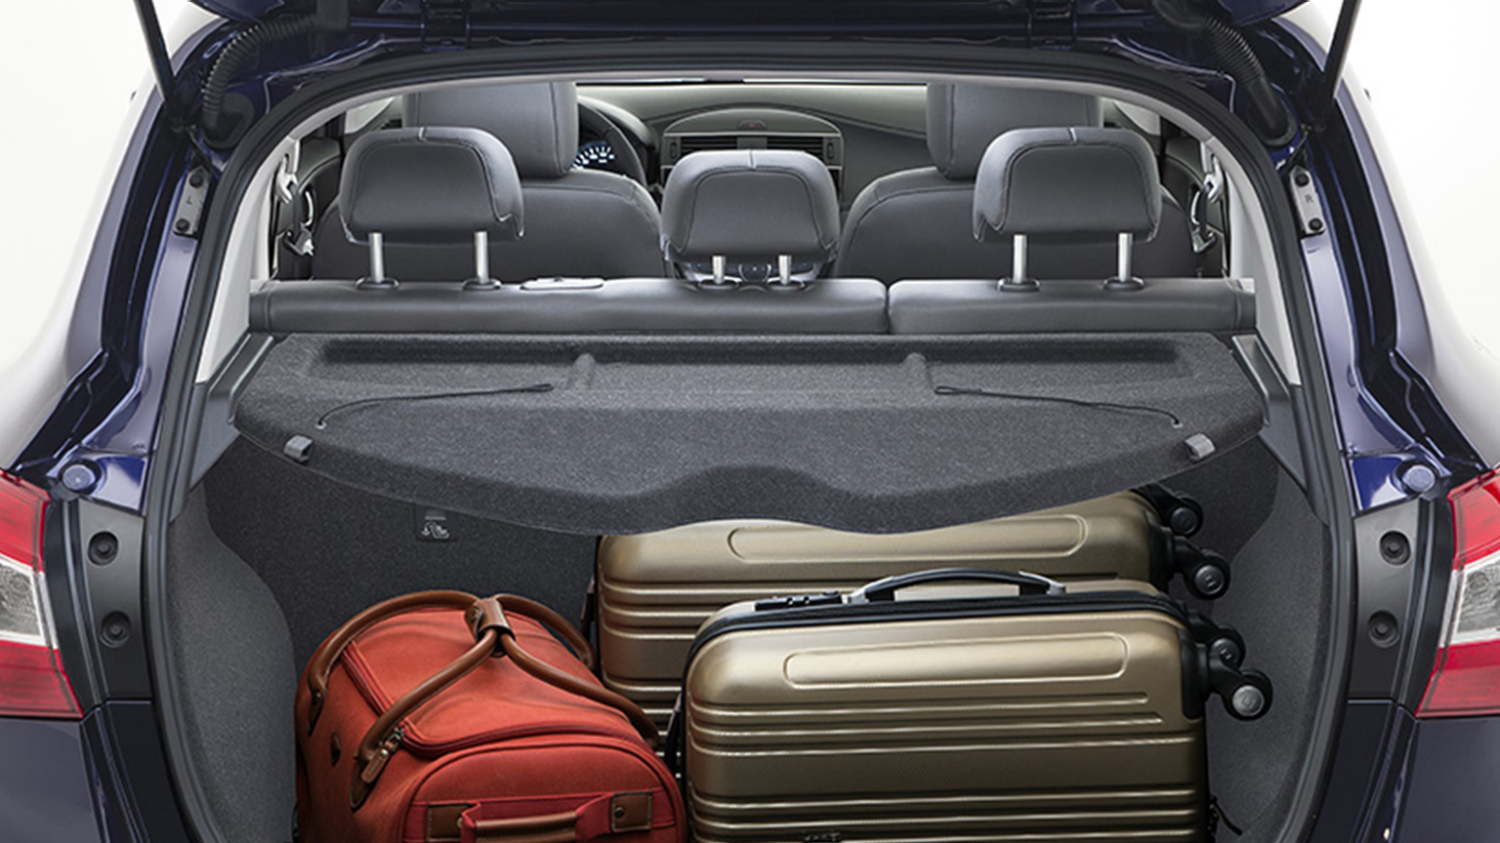 Nissan Pulsar – Hatchback | Storage space